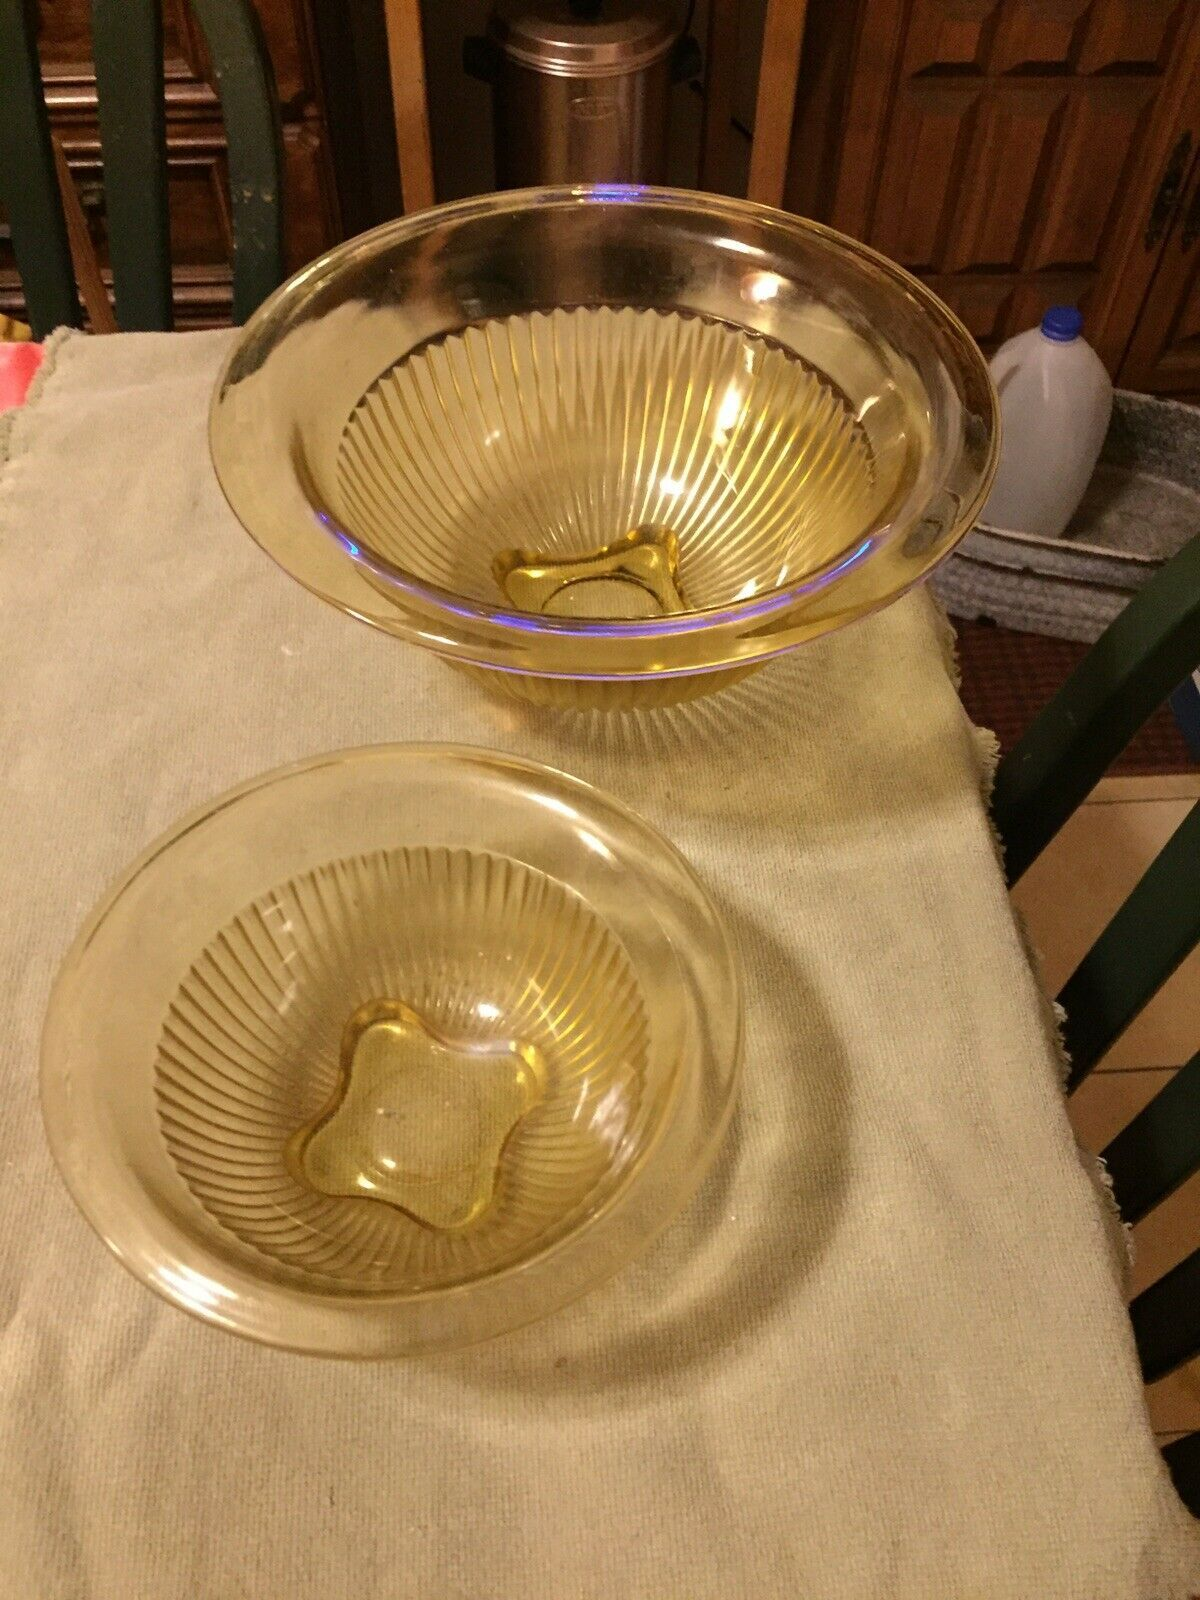 Primary image for FTD HAZEL ATLAS RIBBED AMBER/YELLOW DEPRESSION GLASS 2 PC MIX. BOWLS ROLLED RIM